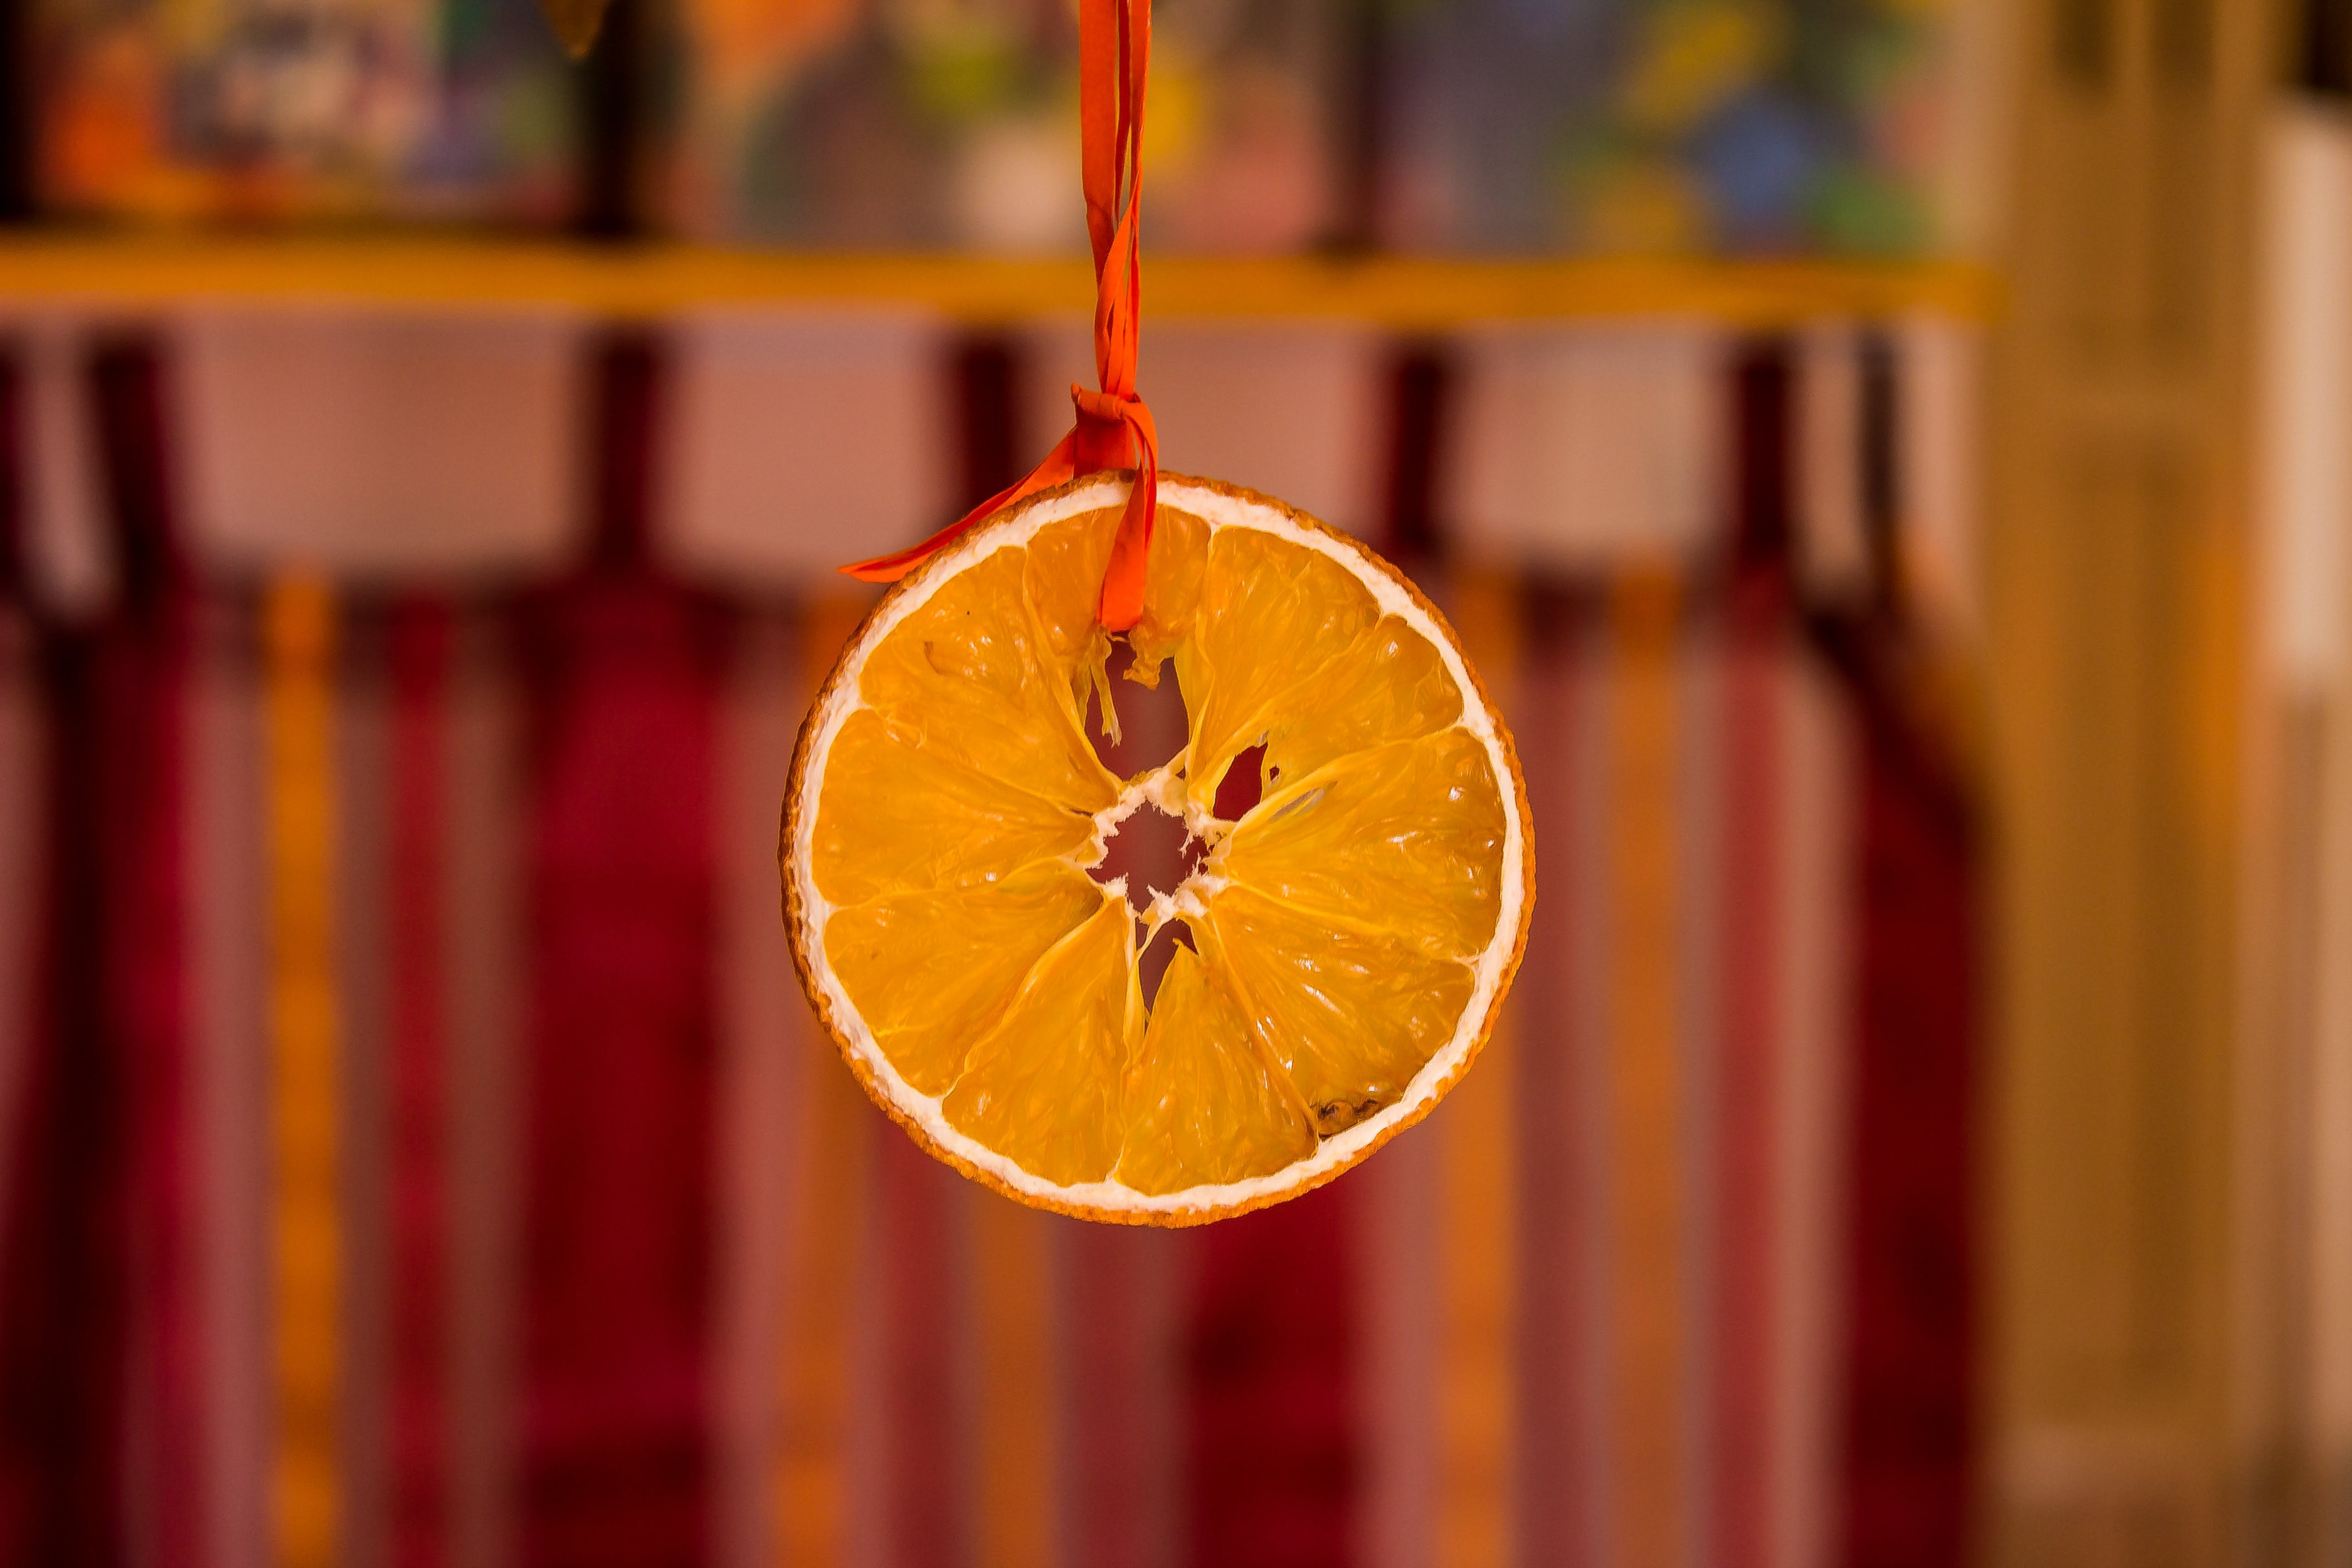 Orange Fruit Hanging